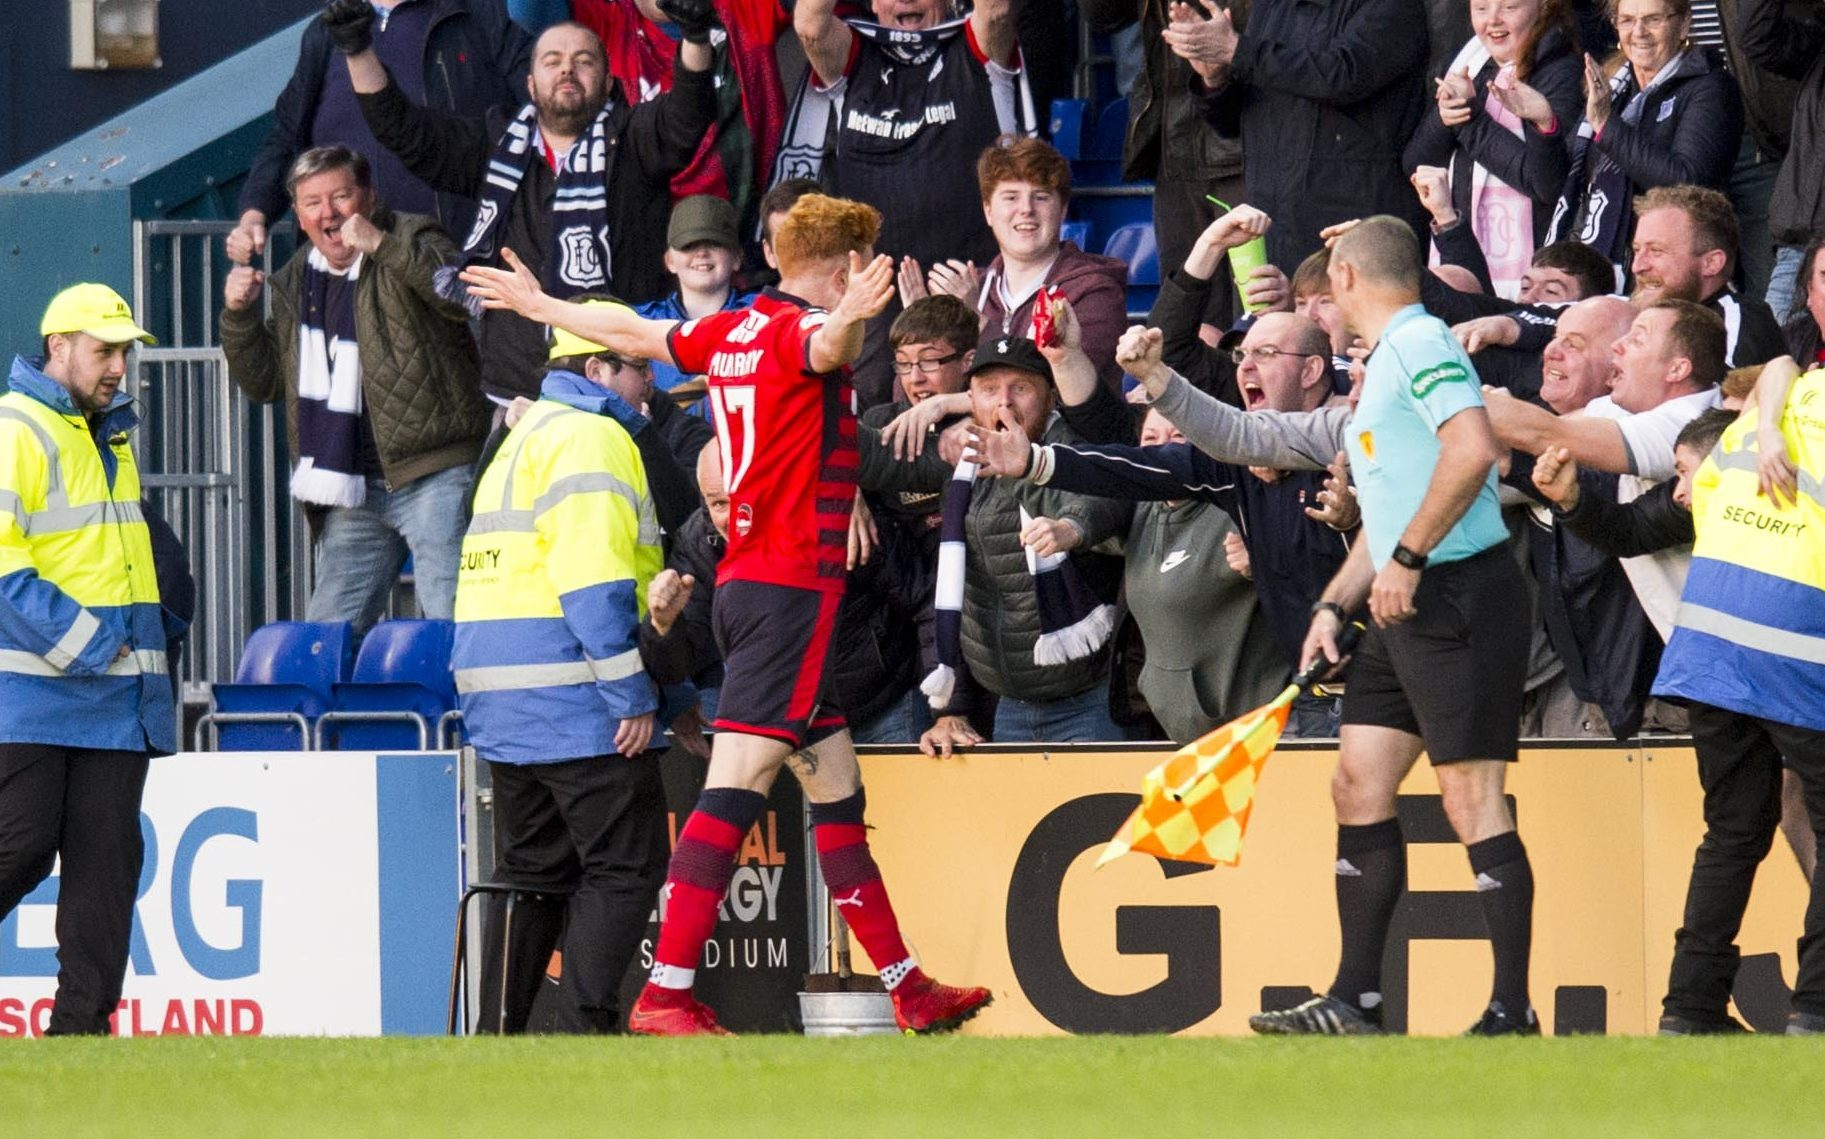 Simon Murray goes to celebrate his goal against Ross County with the travelling Dundee fans.